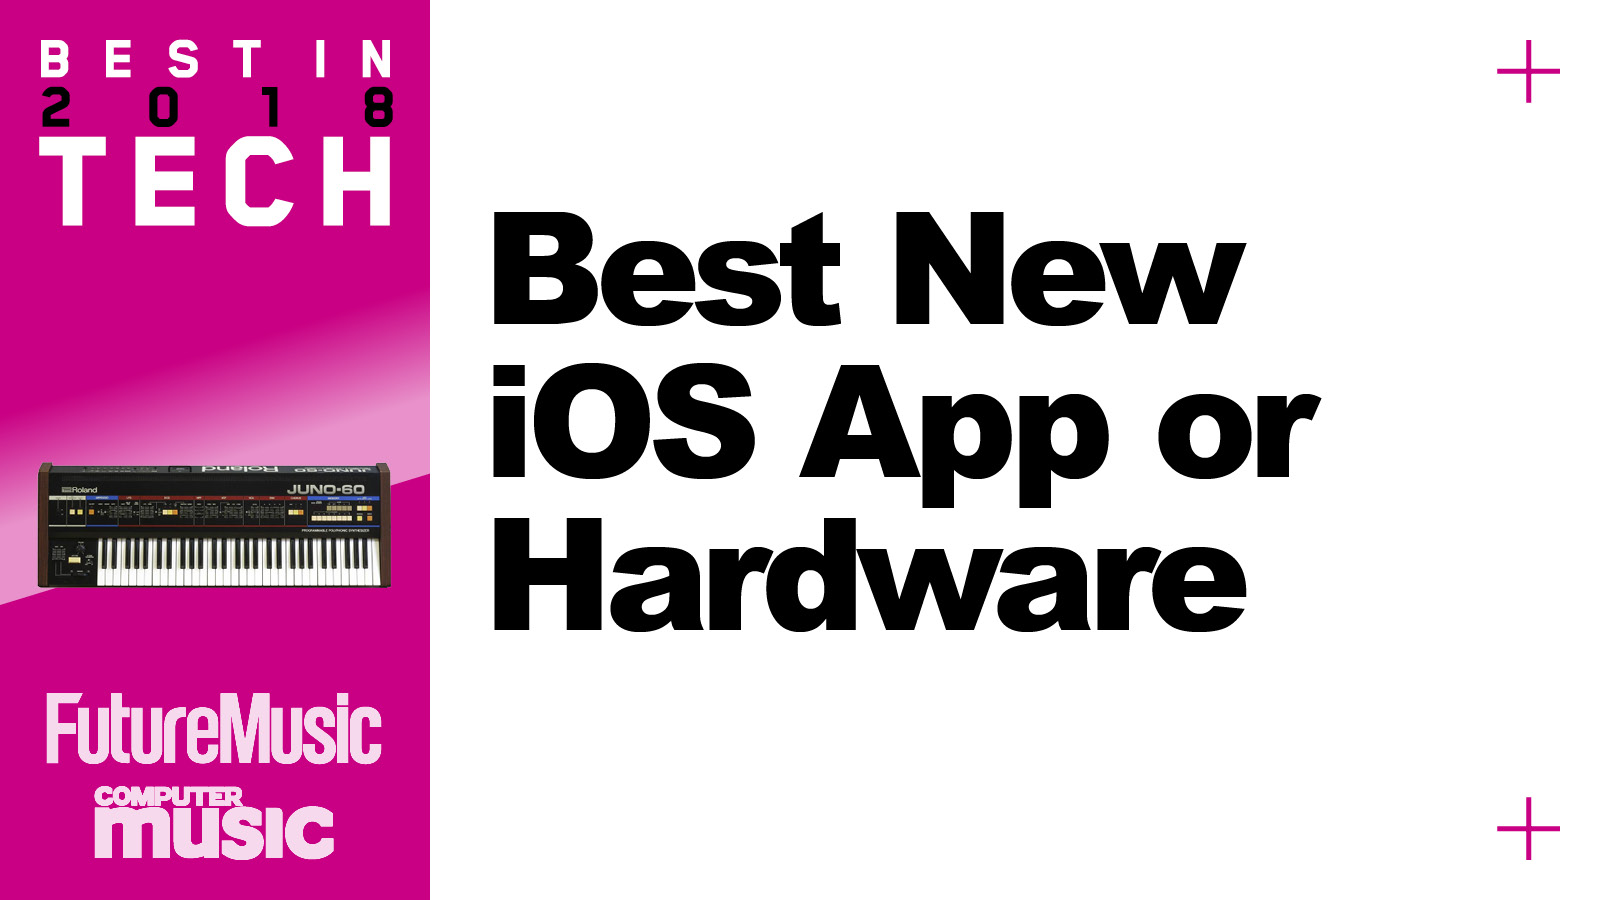 What is the best new iOS app or hardware of 2018?